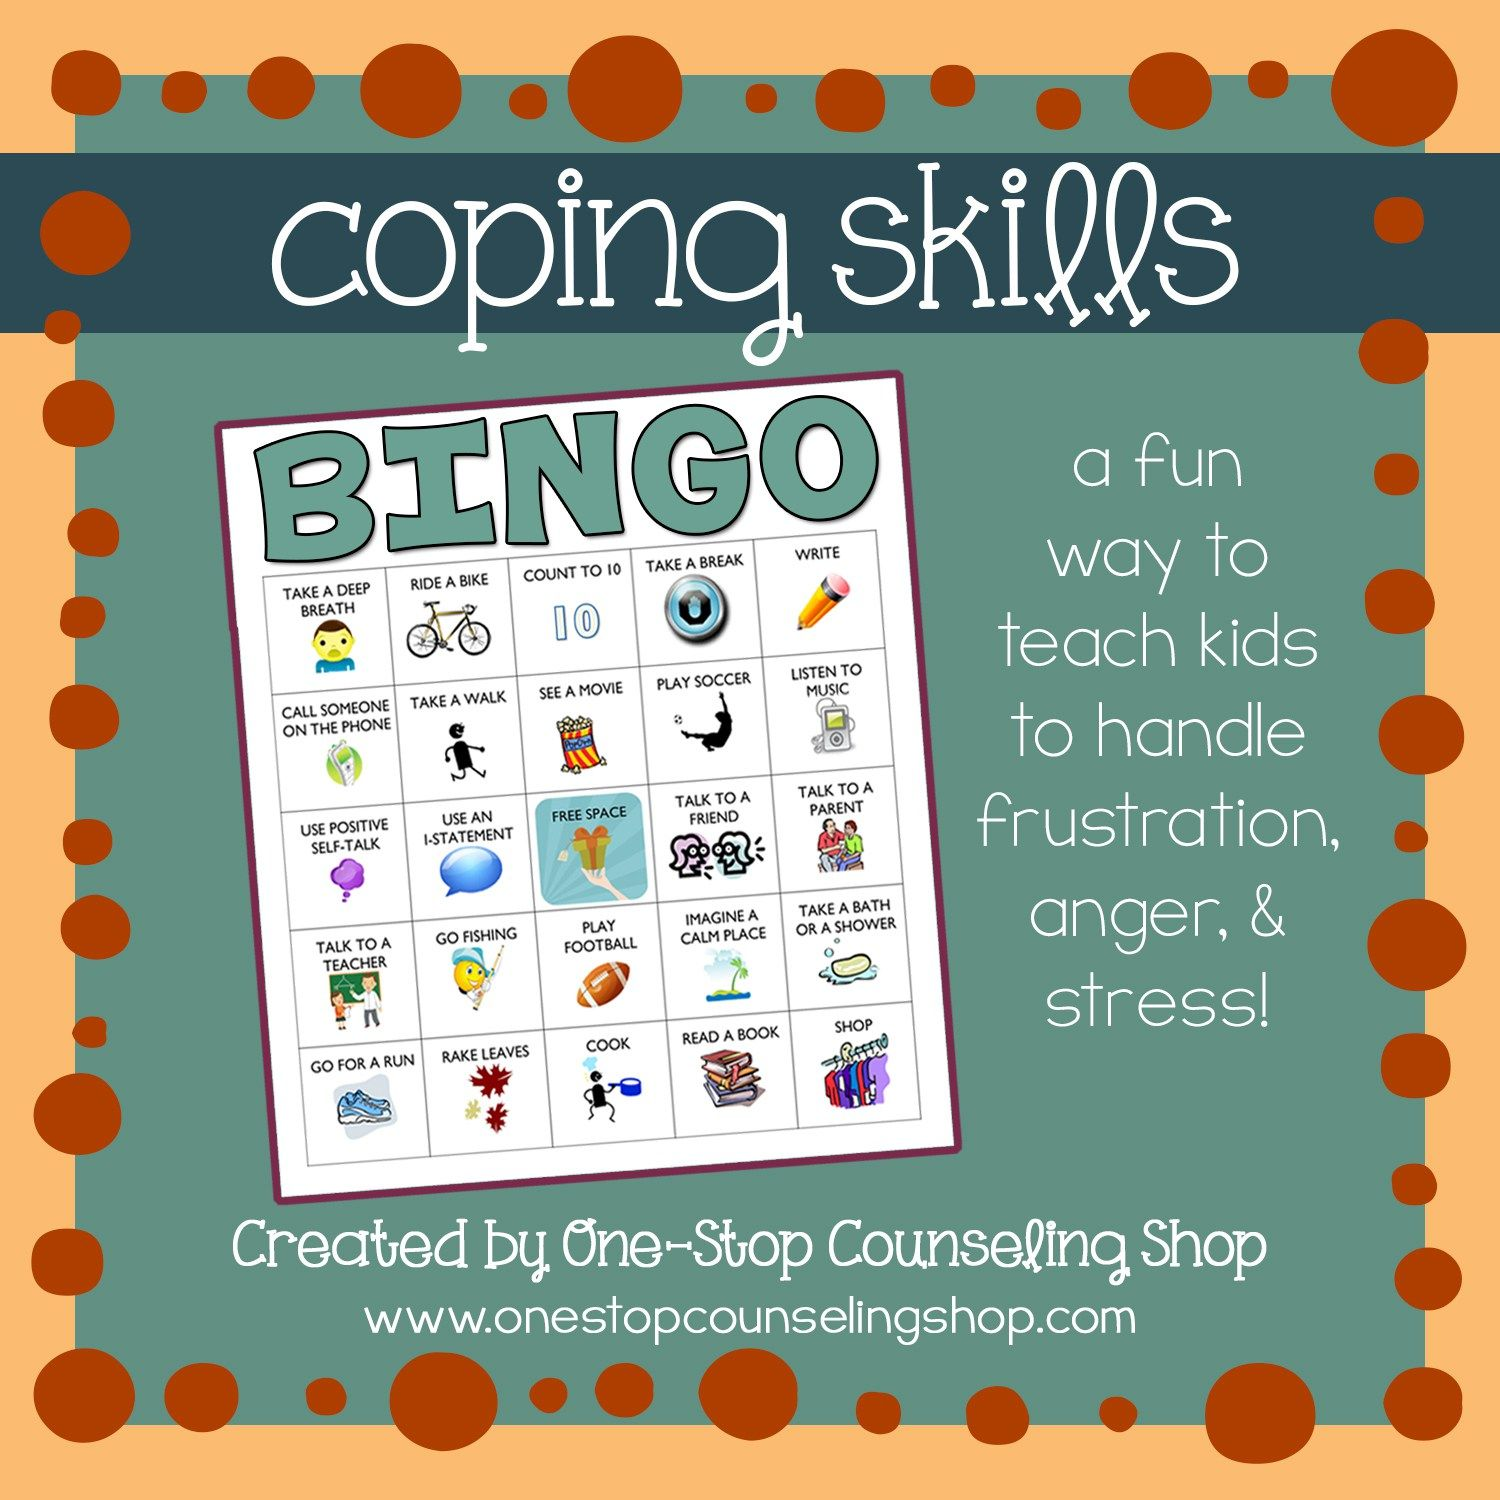 worksheet Anger Management Coping Skills Worksheets one of the lessons i find myself teaching constantly is about coping stress management worksheets infographic discover top seven skills designed to